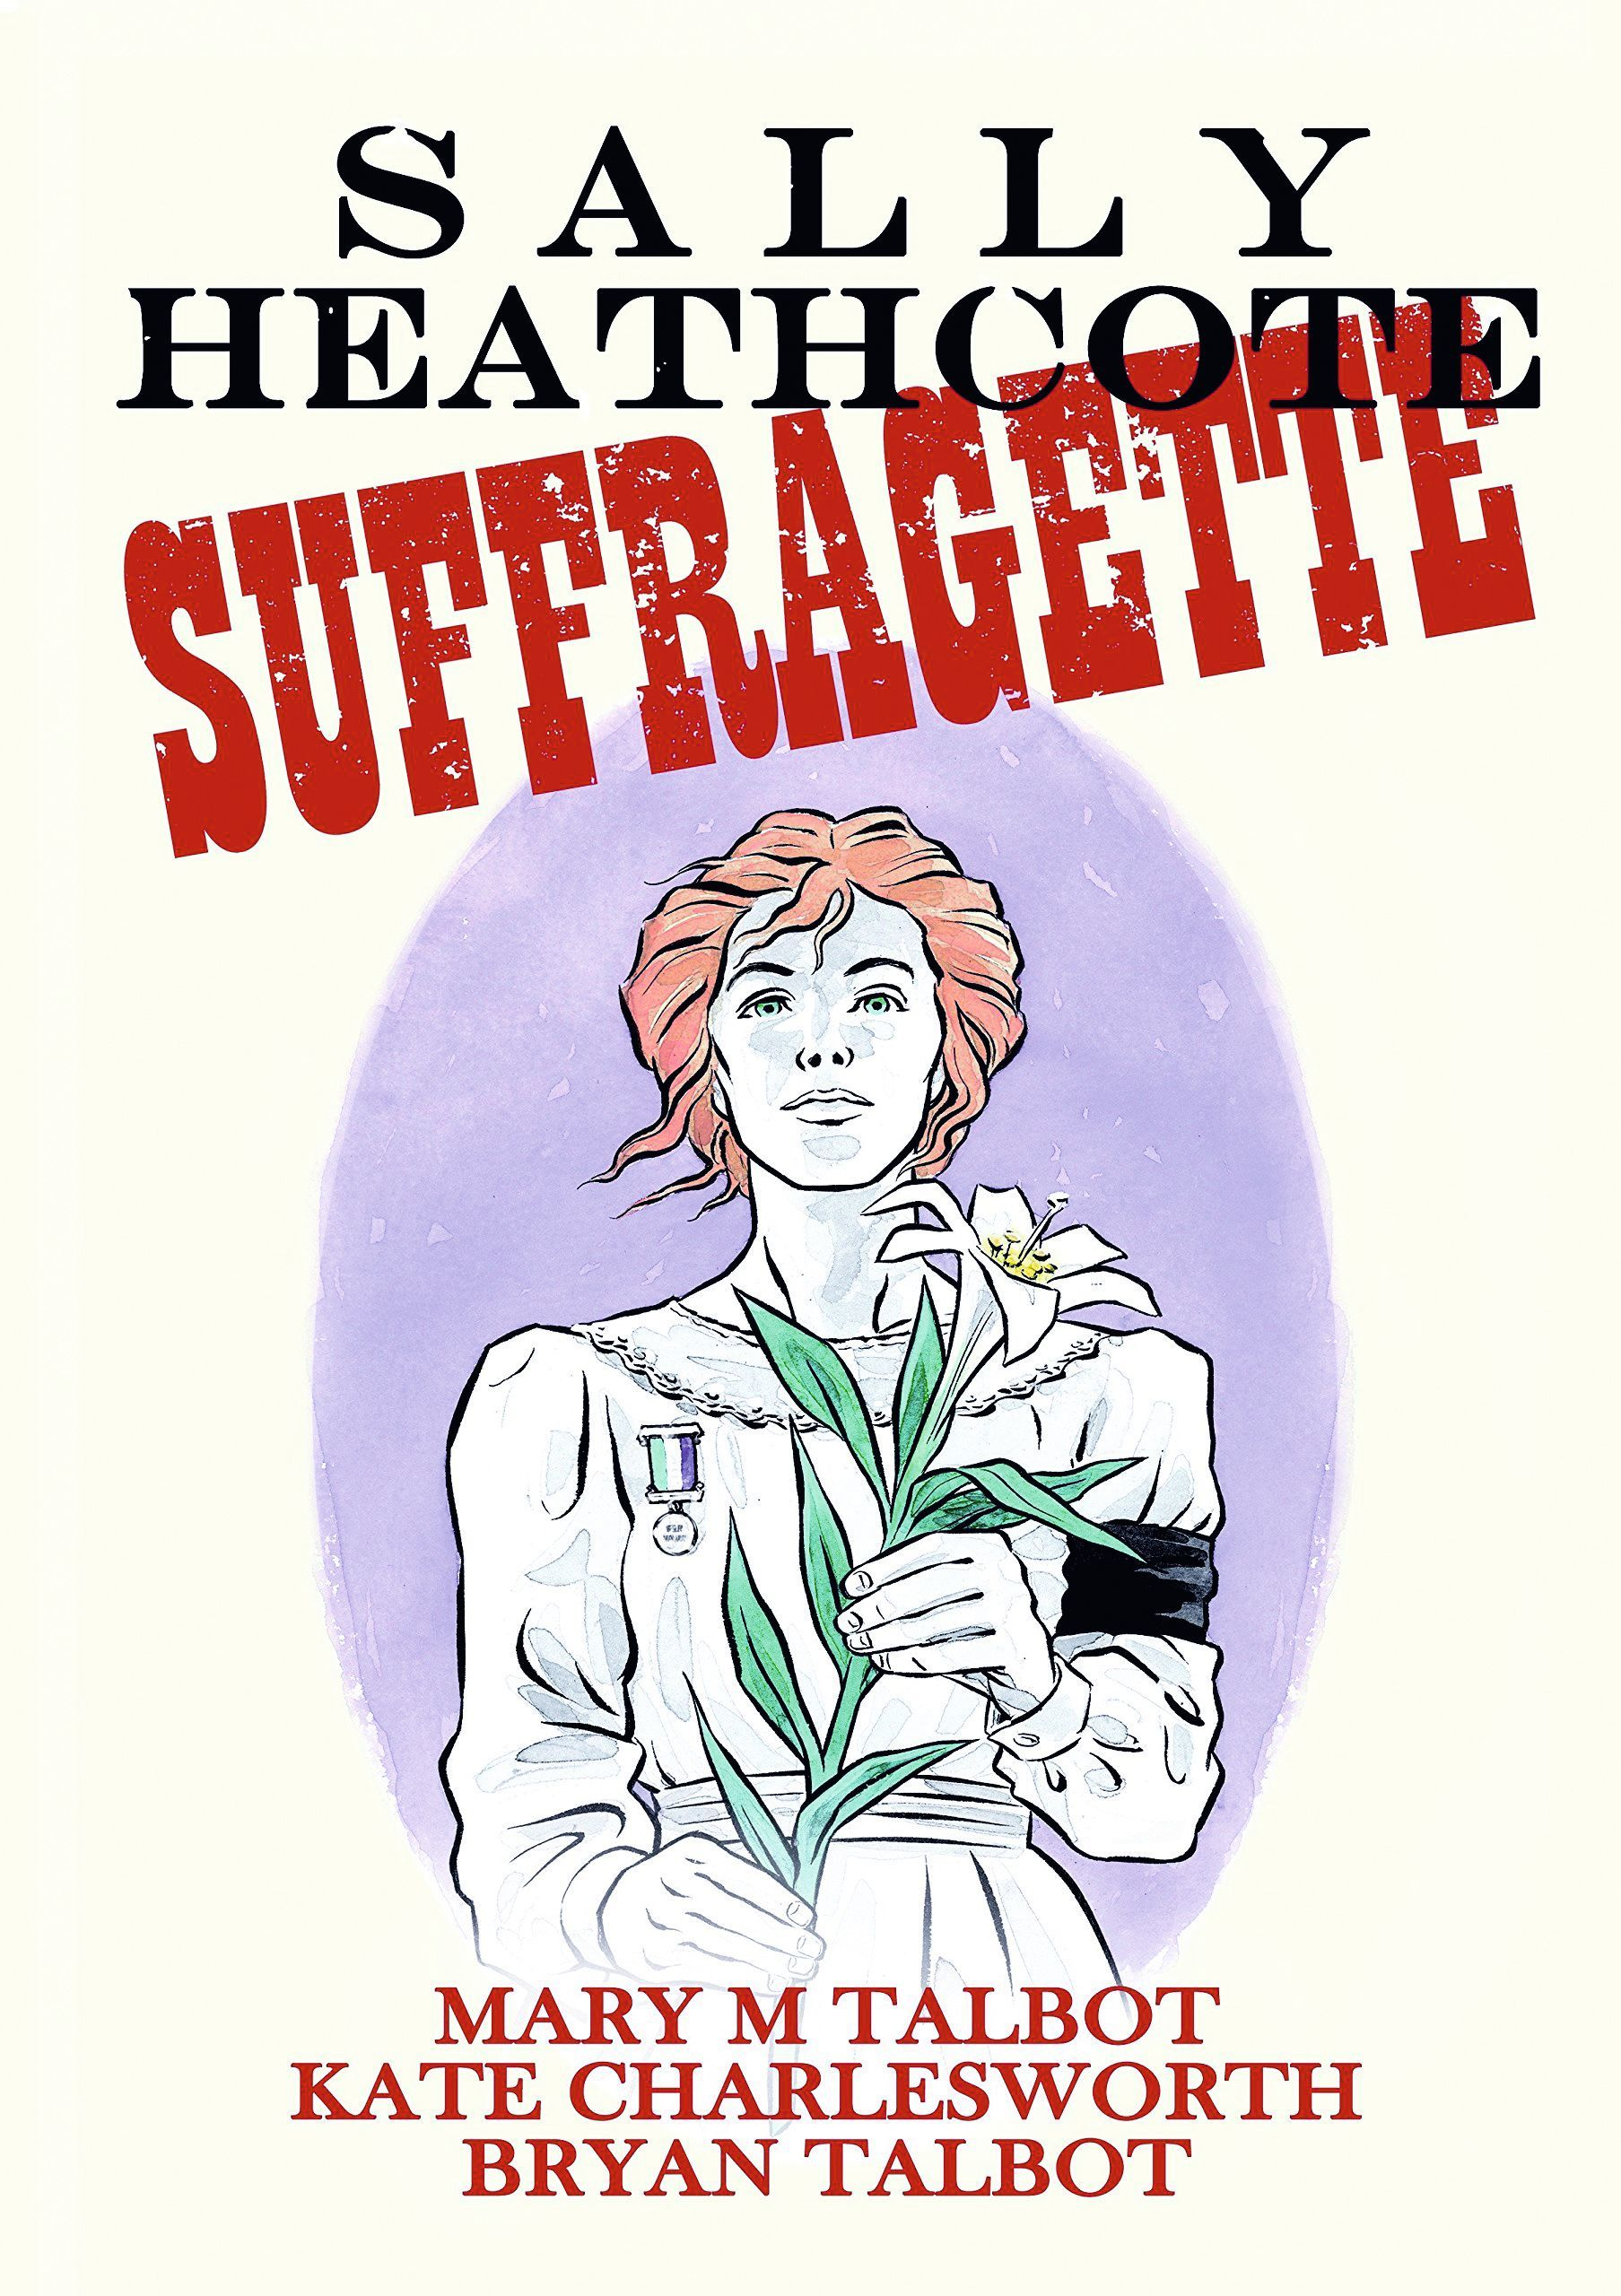 couverture du roman graphique Sally Heathcote : suffragette